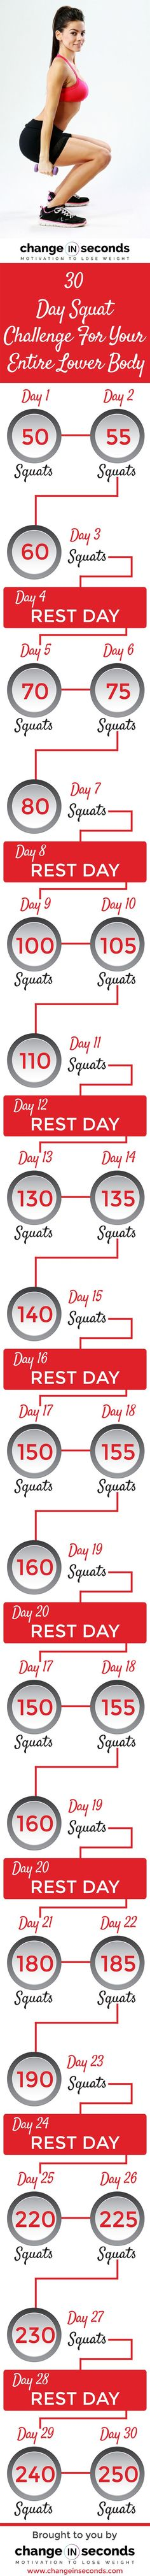 30 Day Squat Challenge (Download PDF) https://www.changeinseconds.com/30-day-squat-challenge-for-your-entire-lower-body/